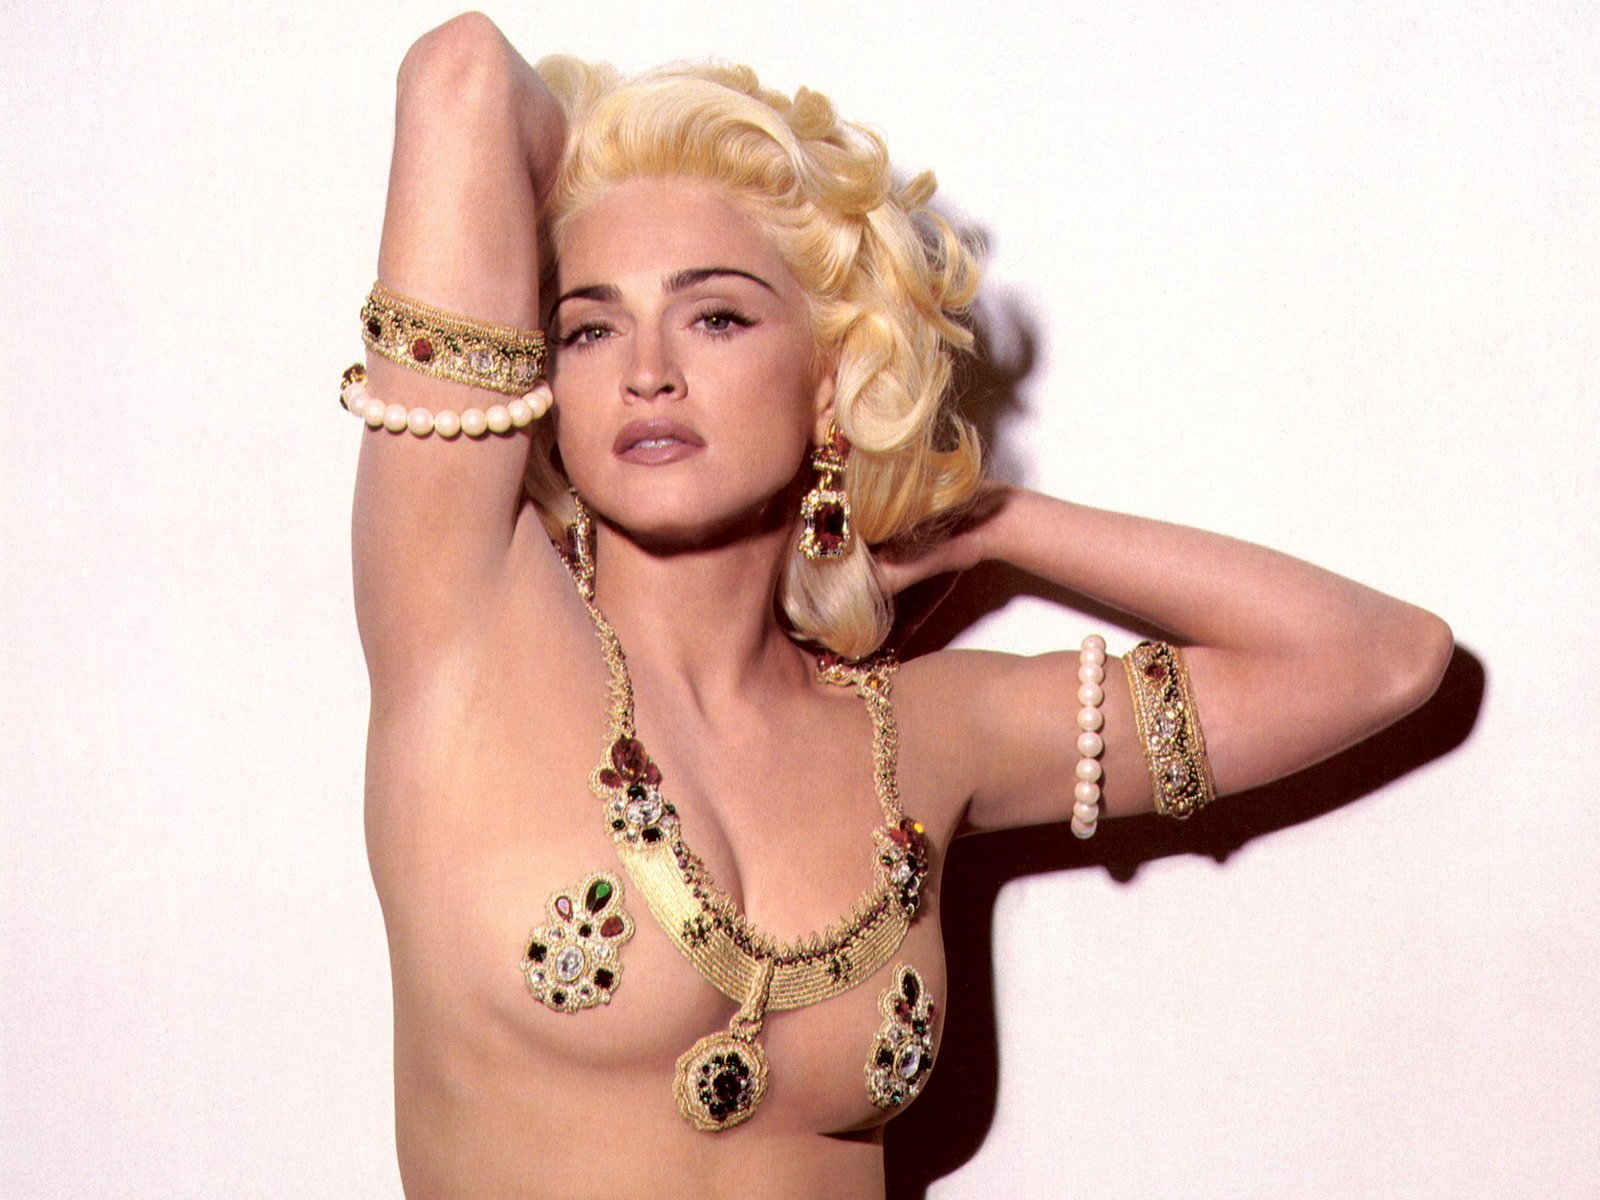 miley cyrus copying madonna miley cyrus and madonna to